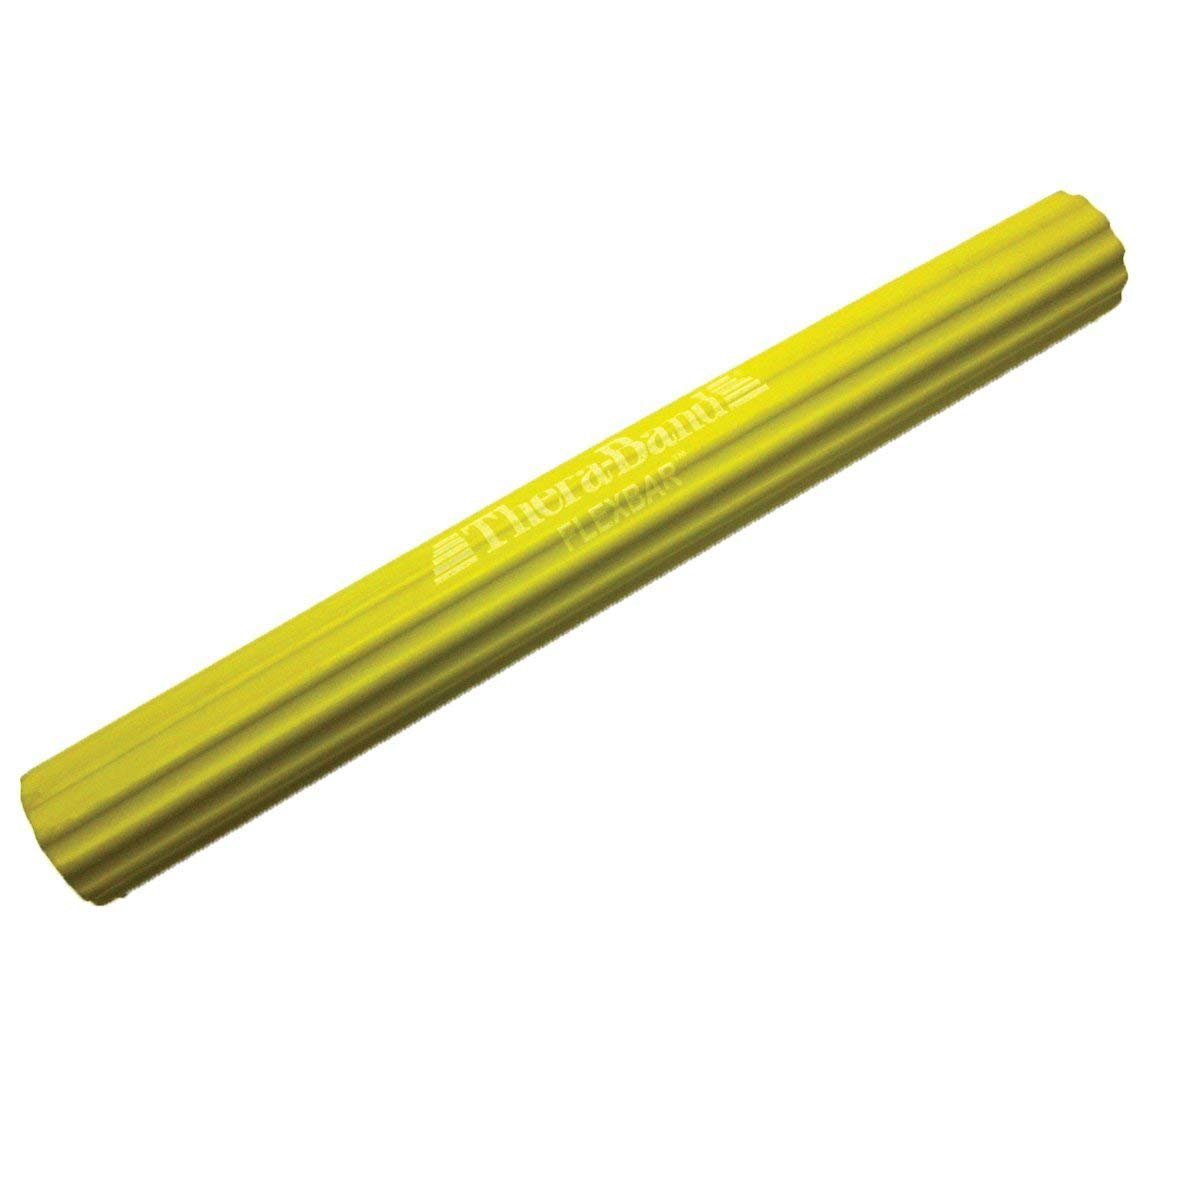 TheraBand FlexBar, Tennis Elbow Therapy Bar, Relieve Tendonitis Pain & Improve Grip Strength, Resistance Bar for Golfers Elbow & Tendinitis, Yellow, Extra Light, Beginner: Industrial & Scientific